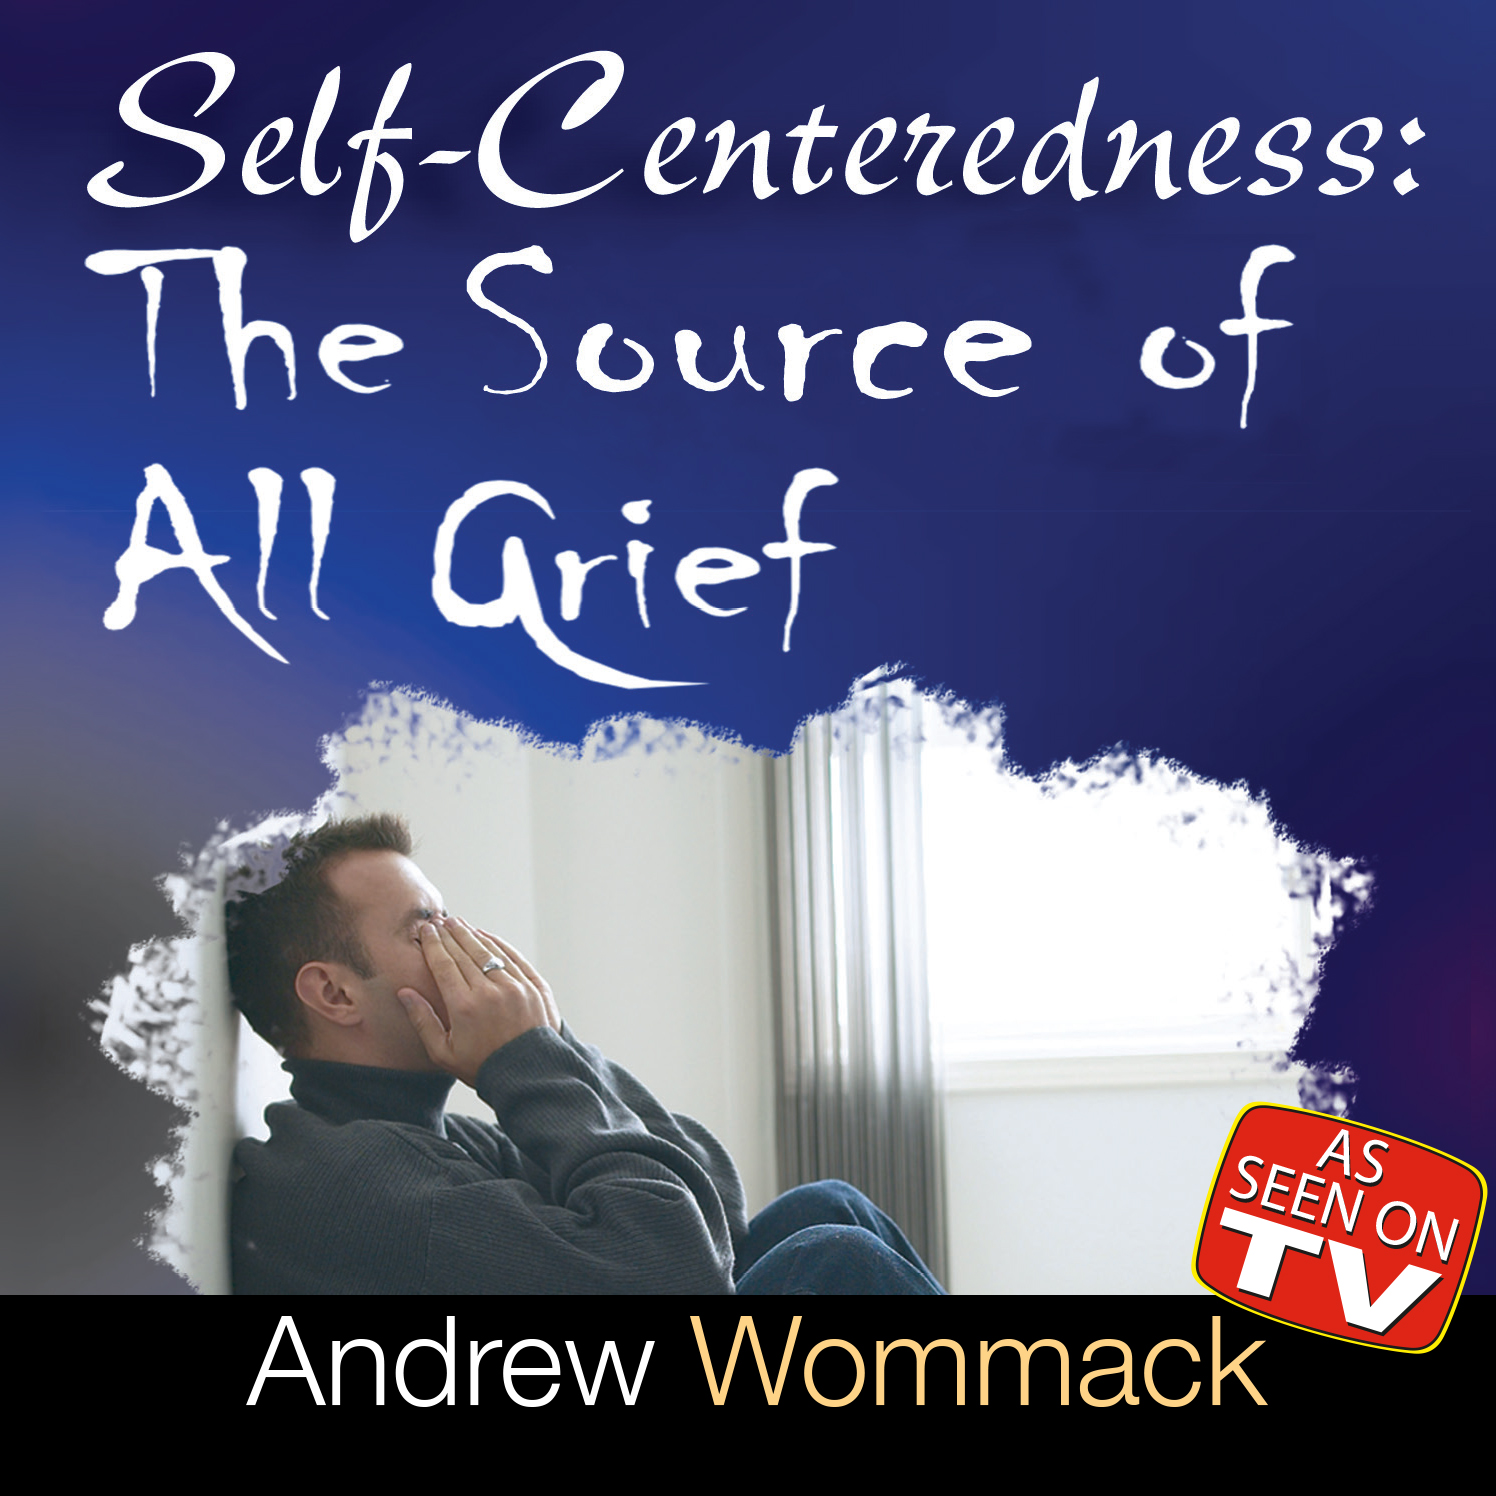 Self-Centeredness: The Source of All Grief